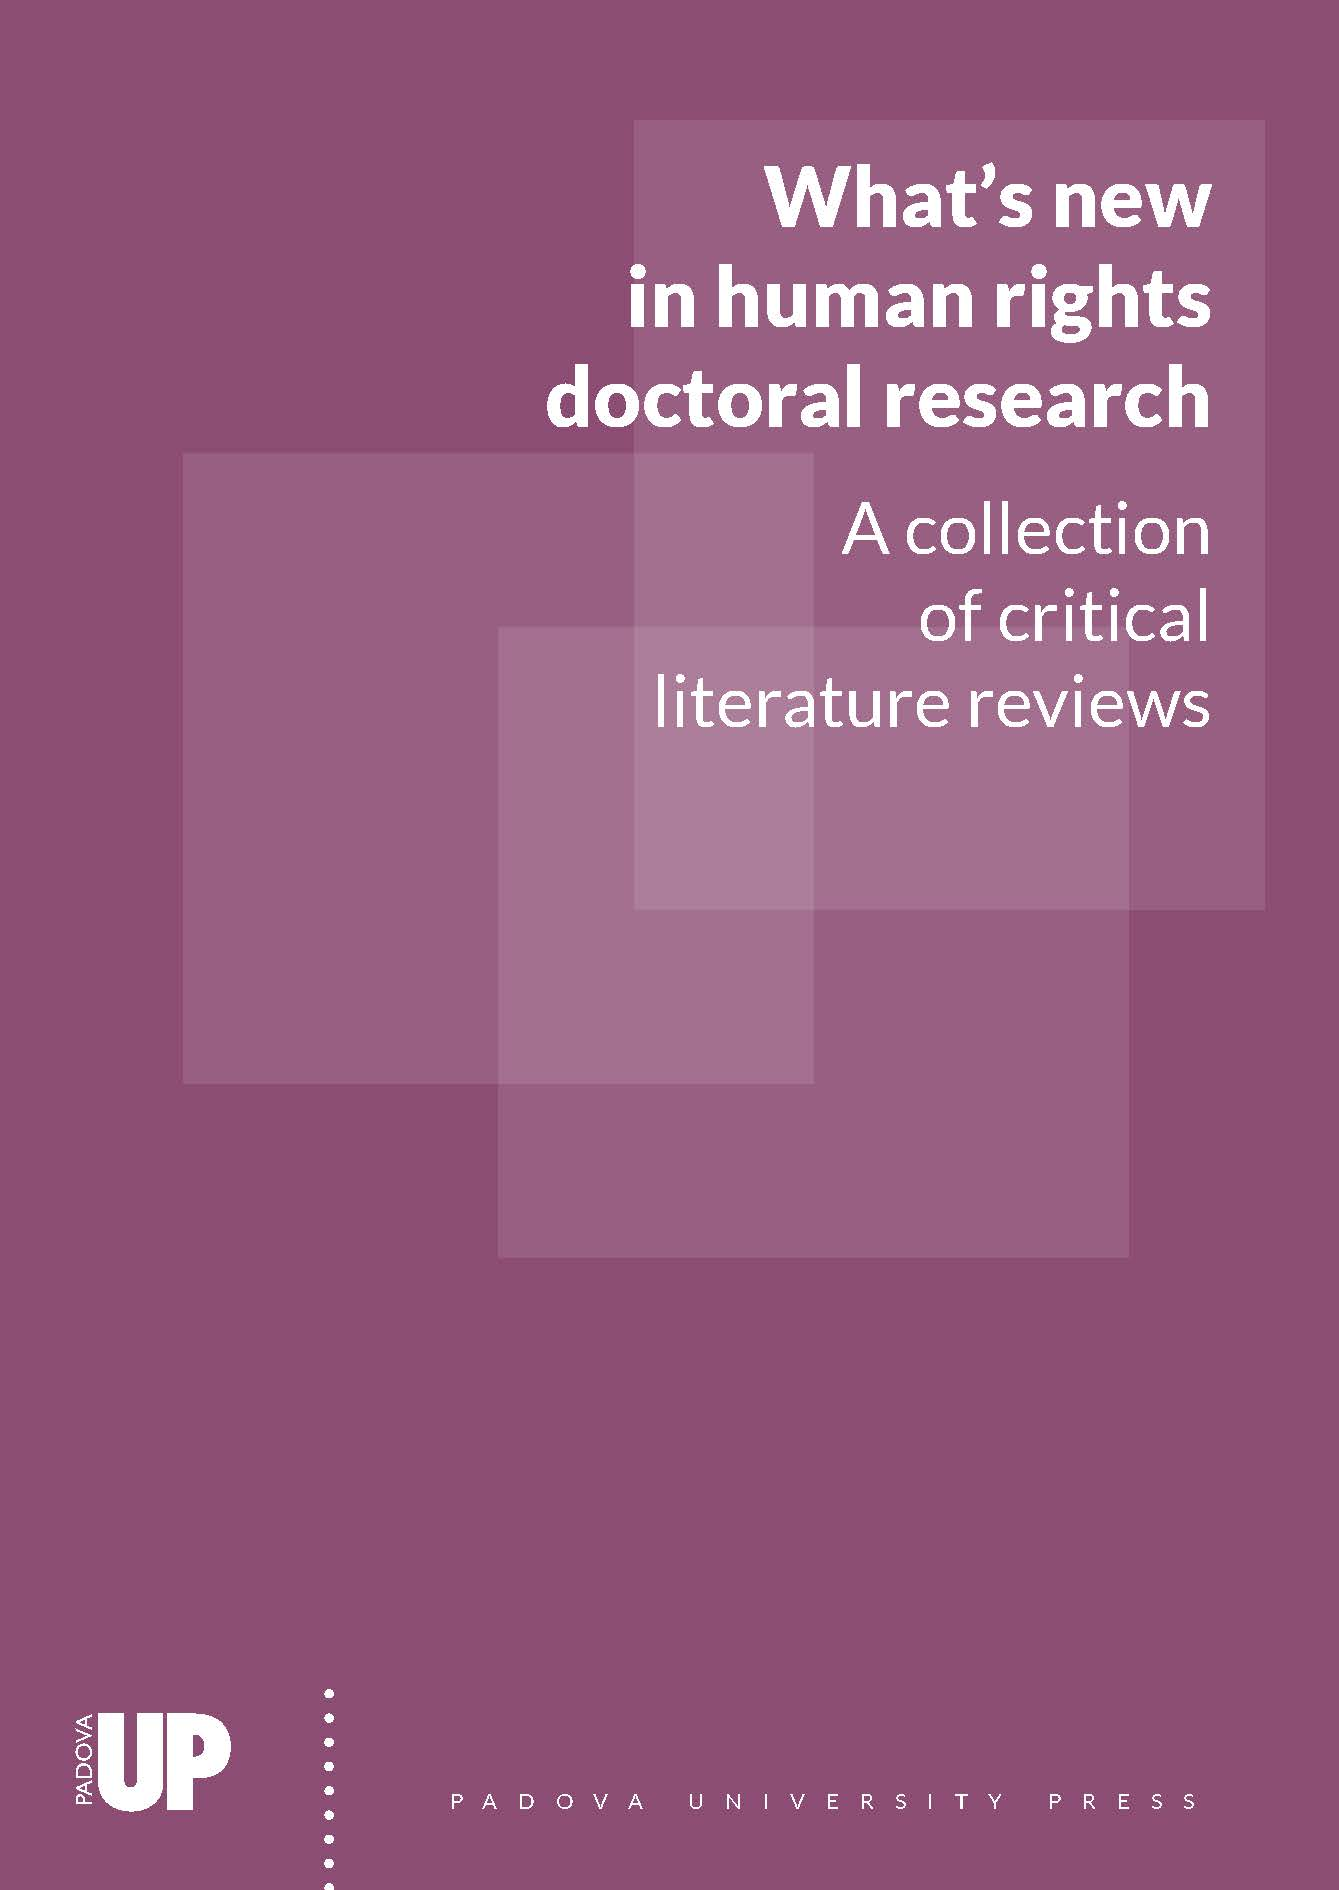 Whats new in  Human Rights Doctoral Research, series cover